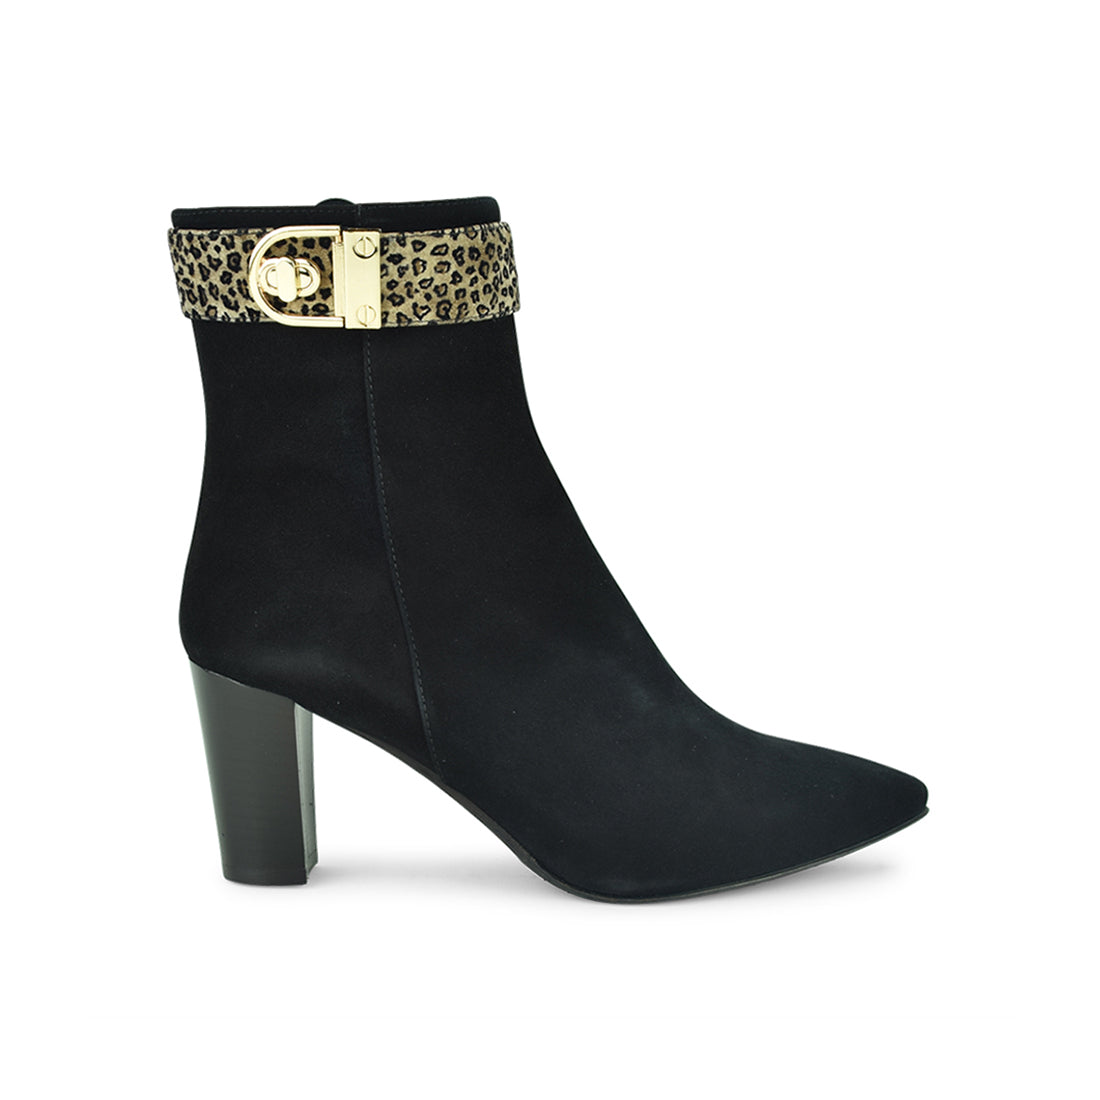 NICOLO - Amber Rossi Ankle Boot Black Suede